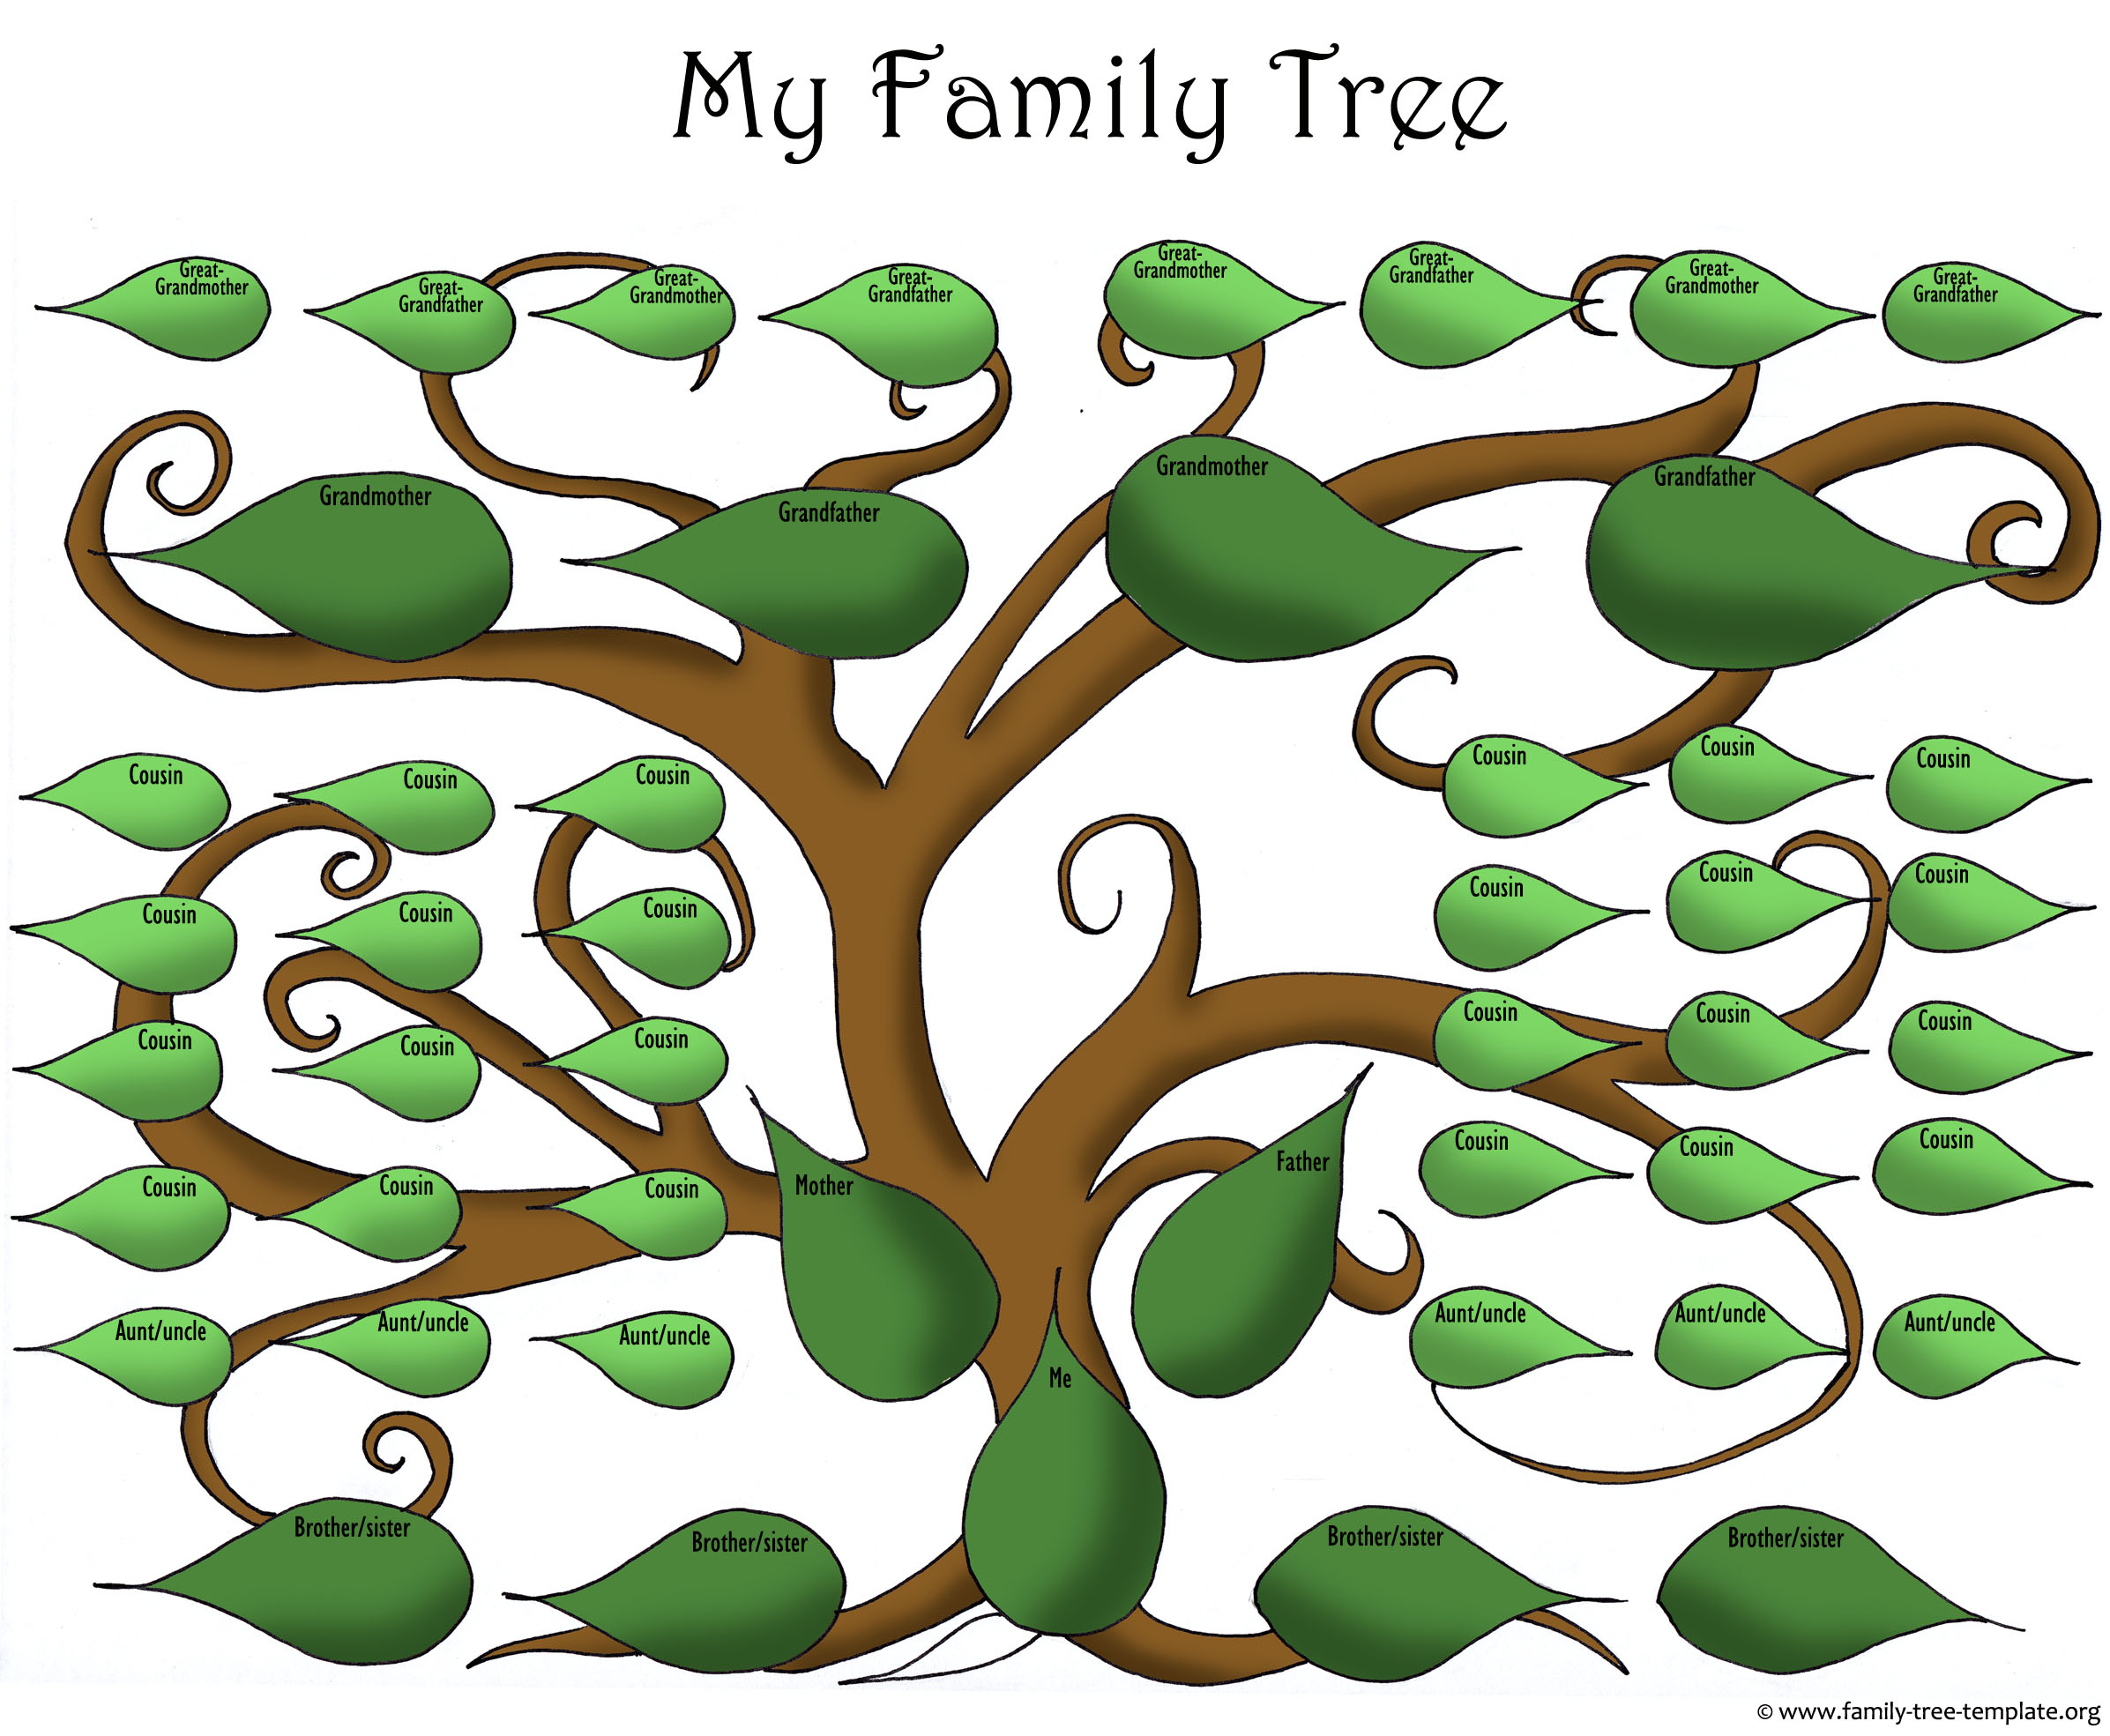 Blank Family Tree To Make Your Kids Genealogy Chart   Family Tree